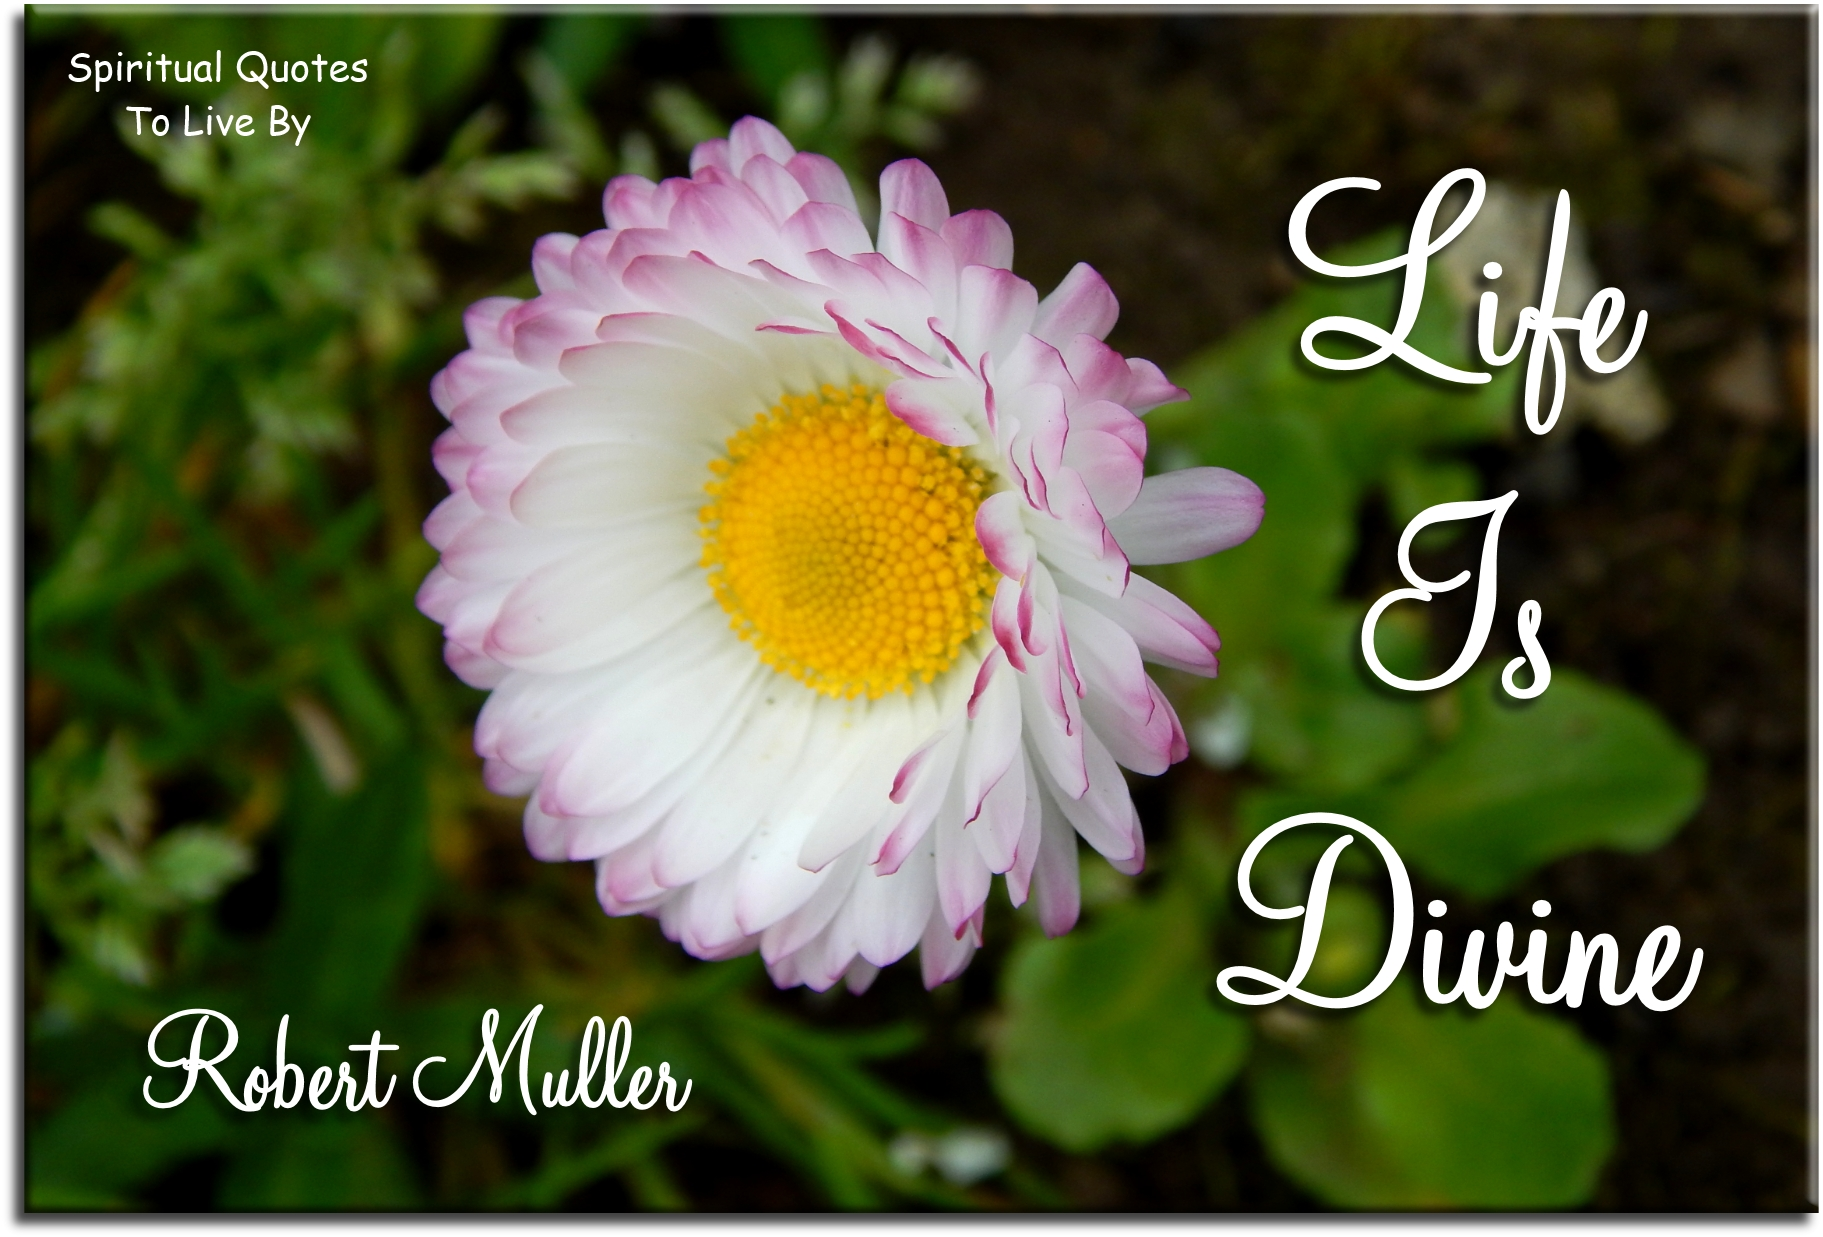 Robert Muller quote: Life is Divine - Spiritual Quotes To Live By